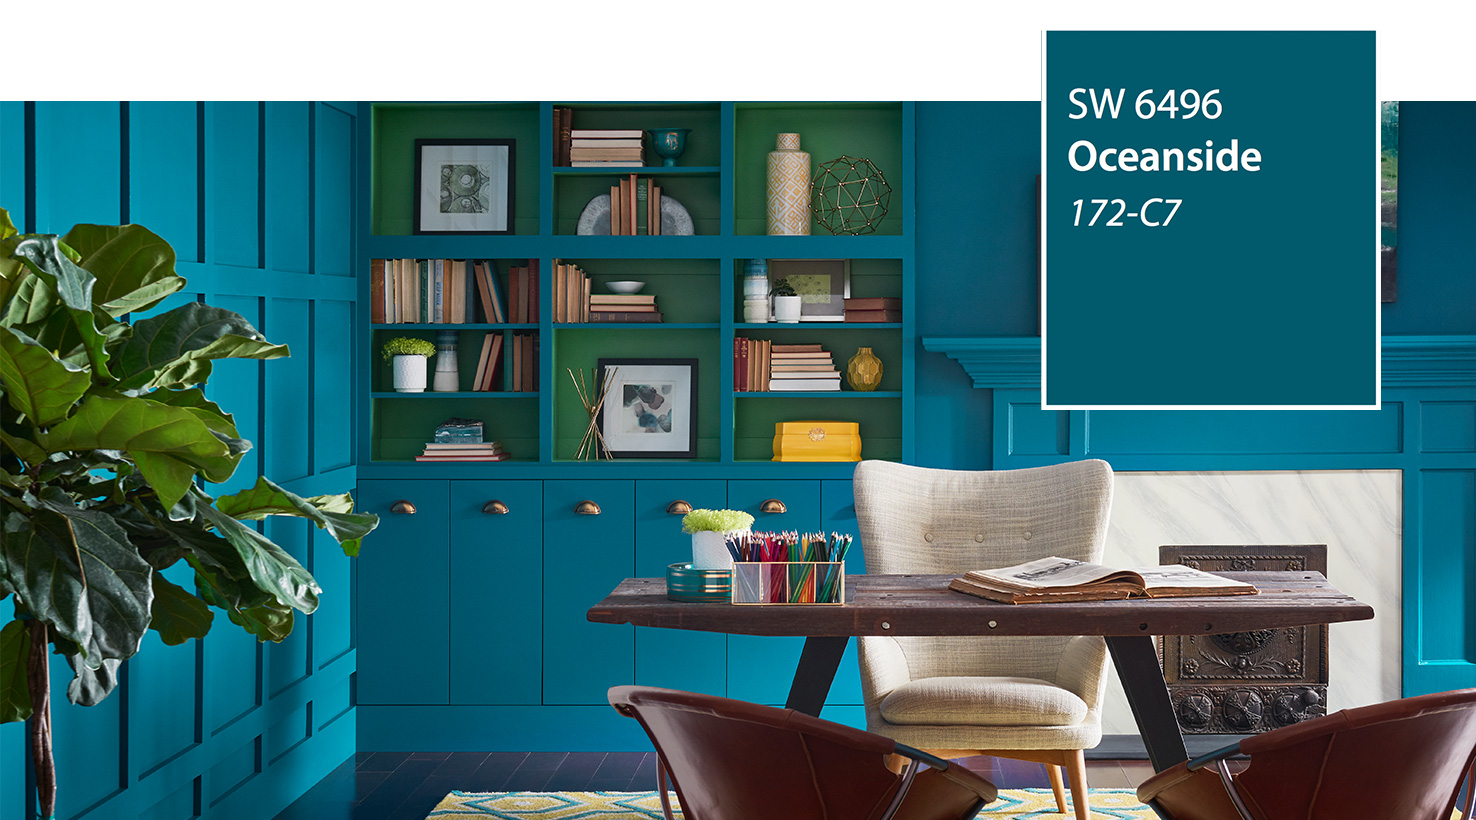 sherwin-williams oceanside